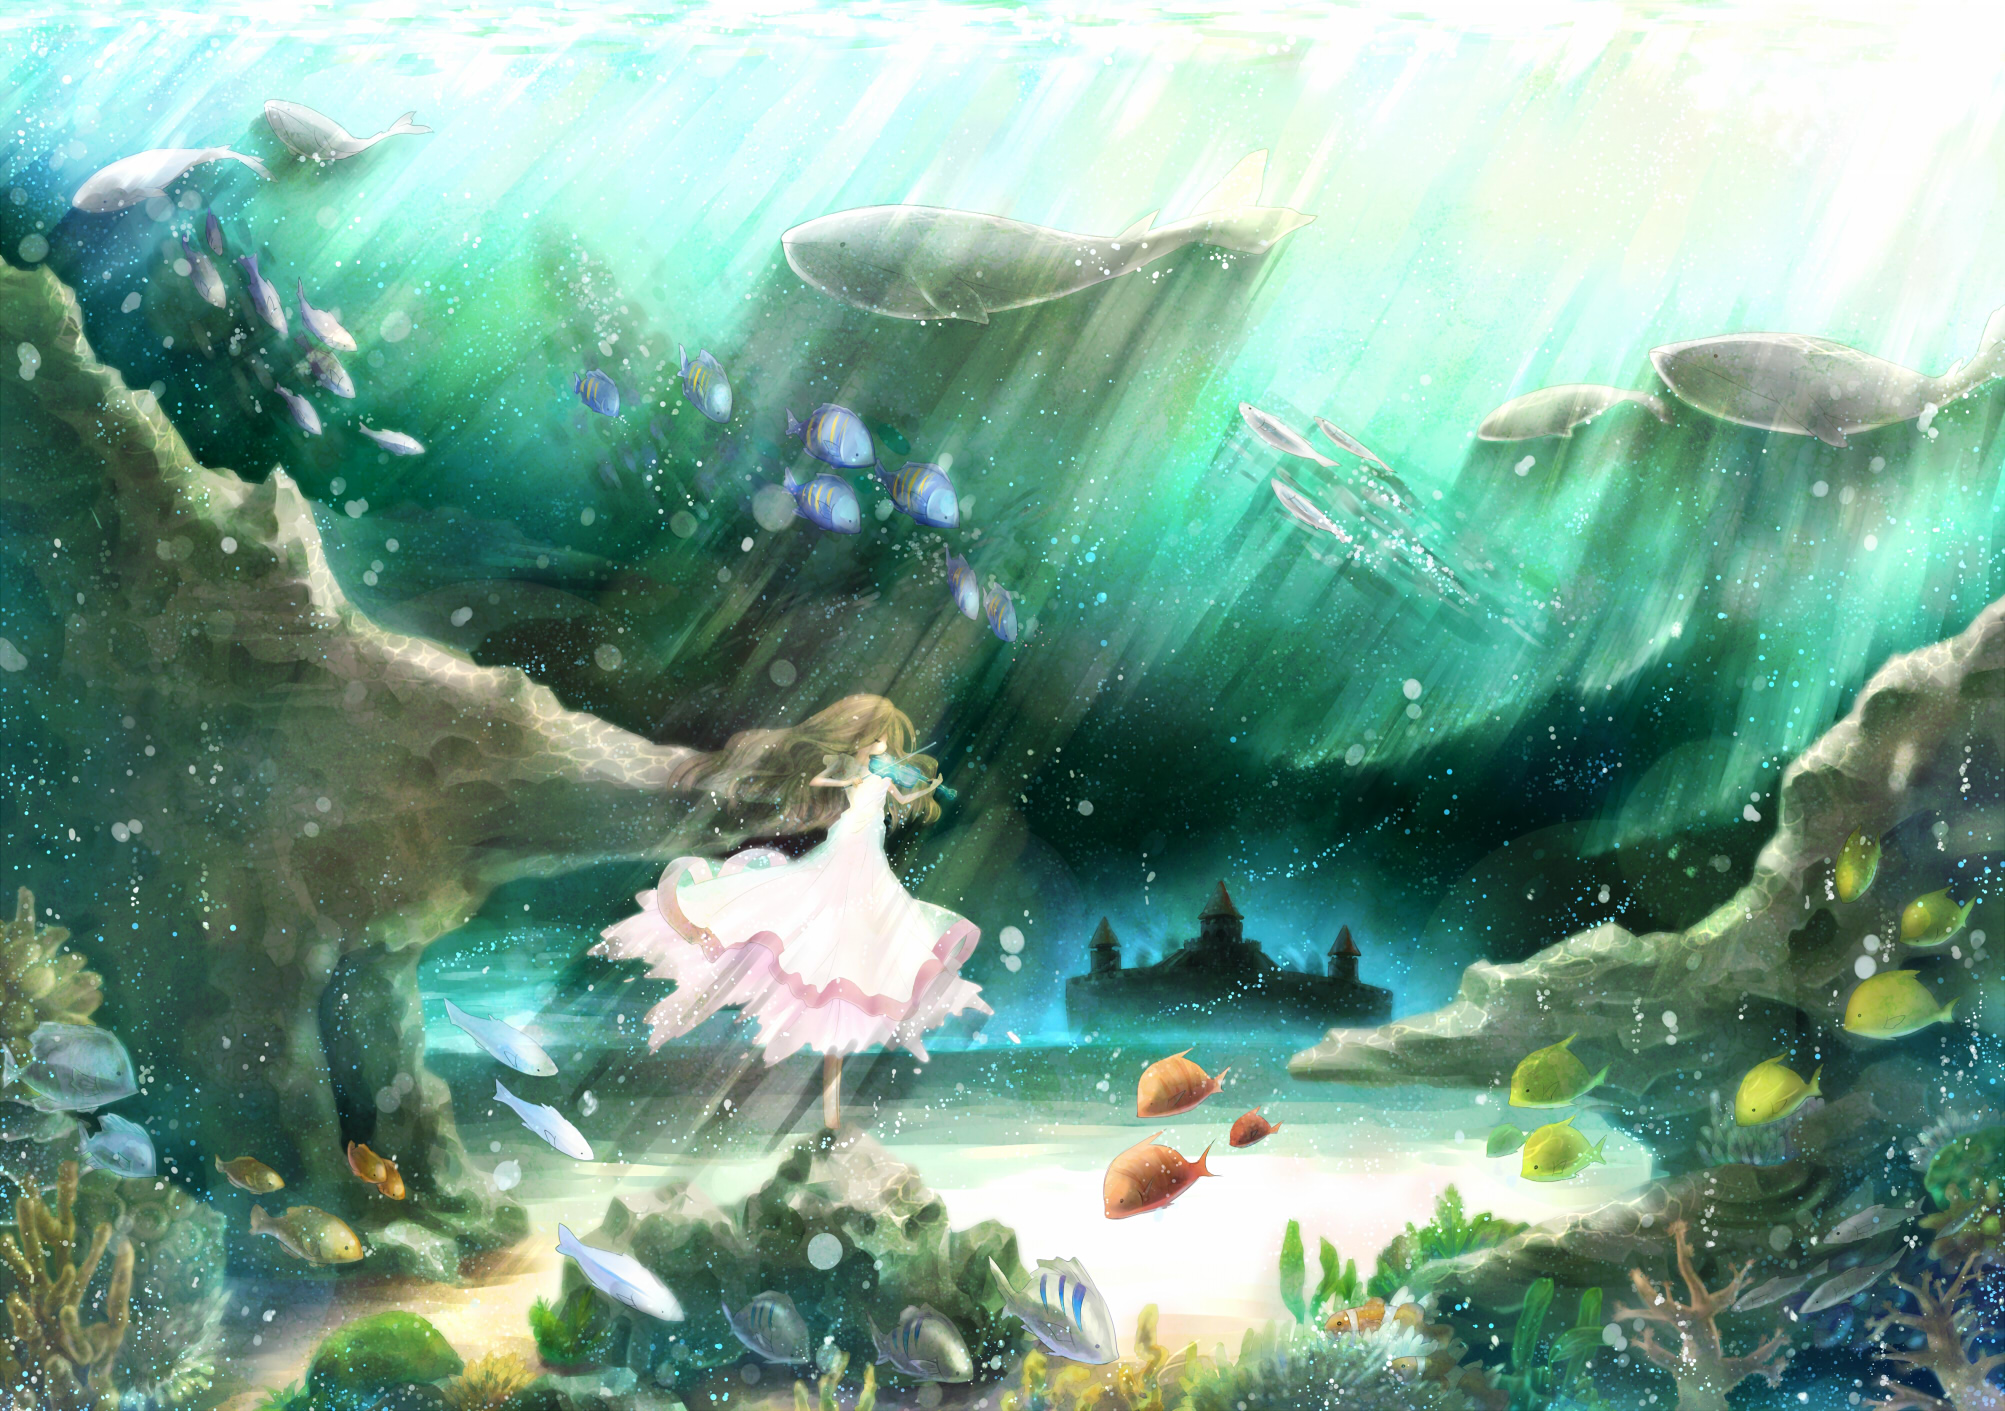 Fantastic Wallpaper Music Watercolor - 34505fb48e8f36d6f1a05c30218f7e28  You Should Have_293182.jpg